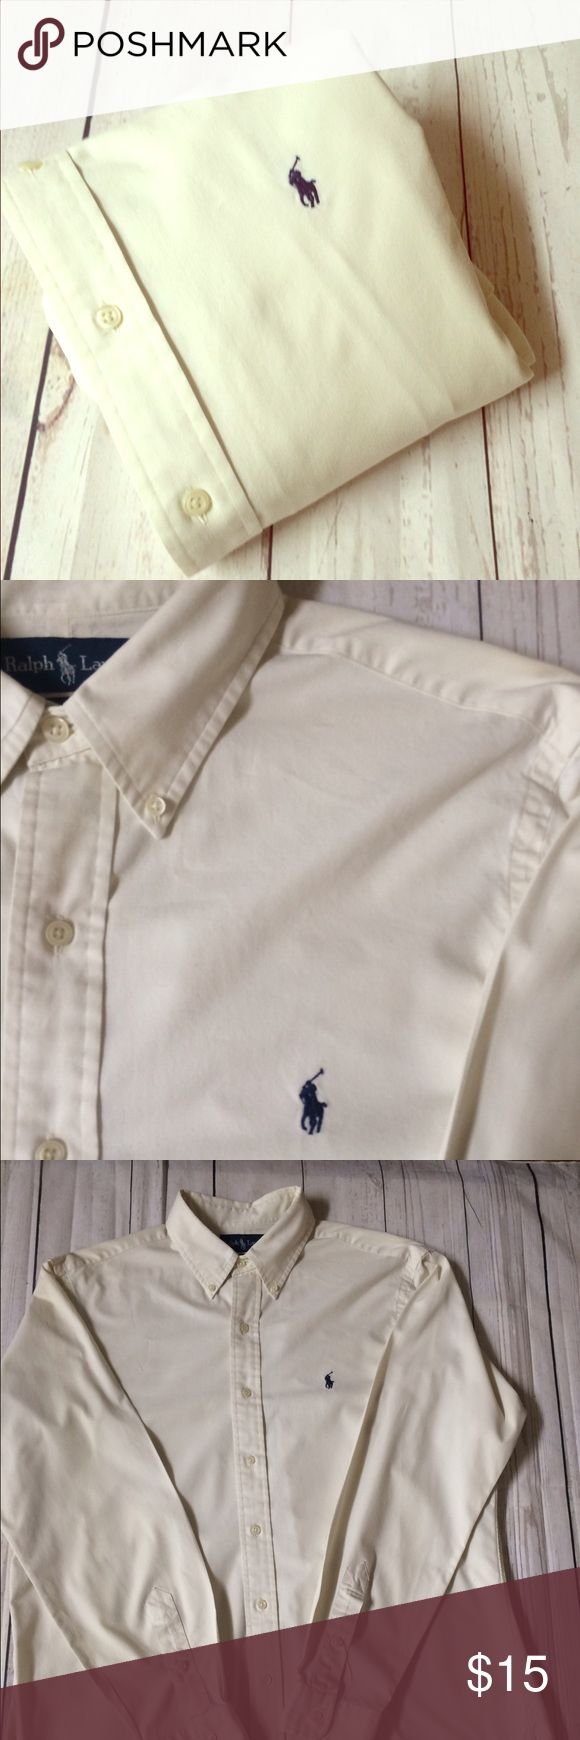 """🐰EASTER SALE🐰POLO•Ralph•Lauren•L•Shirt• 🐣EASTER SALE🐣 Men's Polo shirts are $15/ea🐣 No offers will be accepted or further reductions will be taken🐣 men's  long sleeve button front 100% cotton oxford shirt•L Classic Fit per tag•Signature pony at chest•spot on back of sleeve, as pictured• off-white color• Chest: 26"""" Length: 32"""" Sleeve: 35"""" Shoulder: 19.5"""" Polo by Ralph Lauren Shirts Casual Button Down Shirts"""